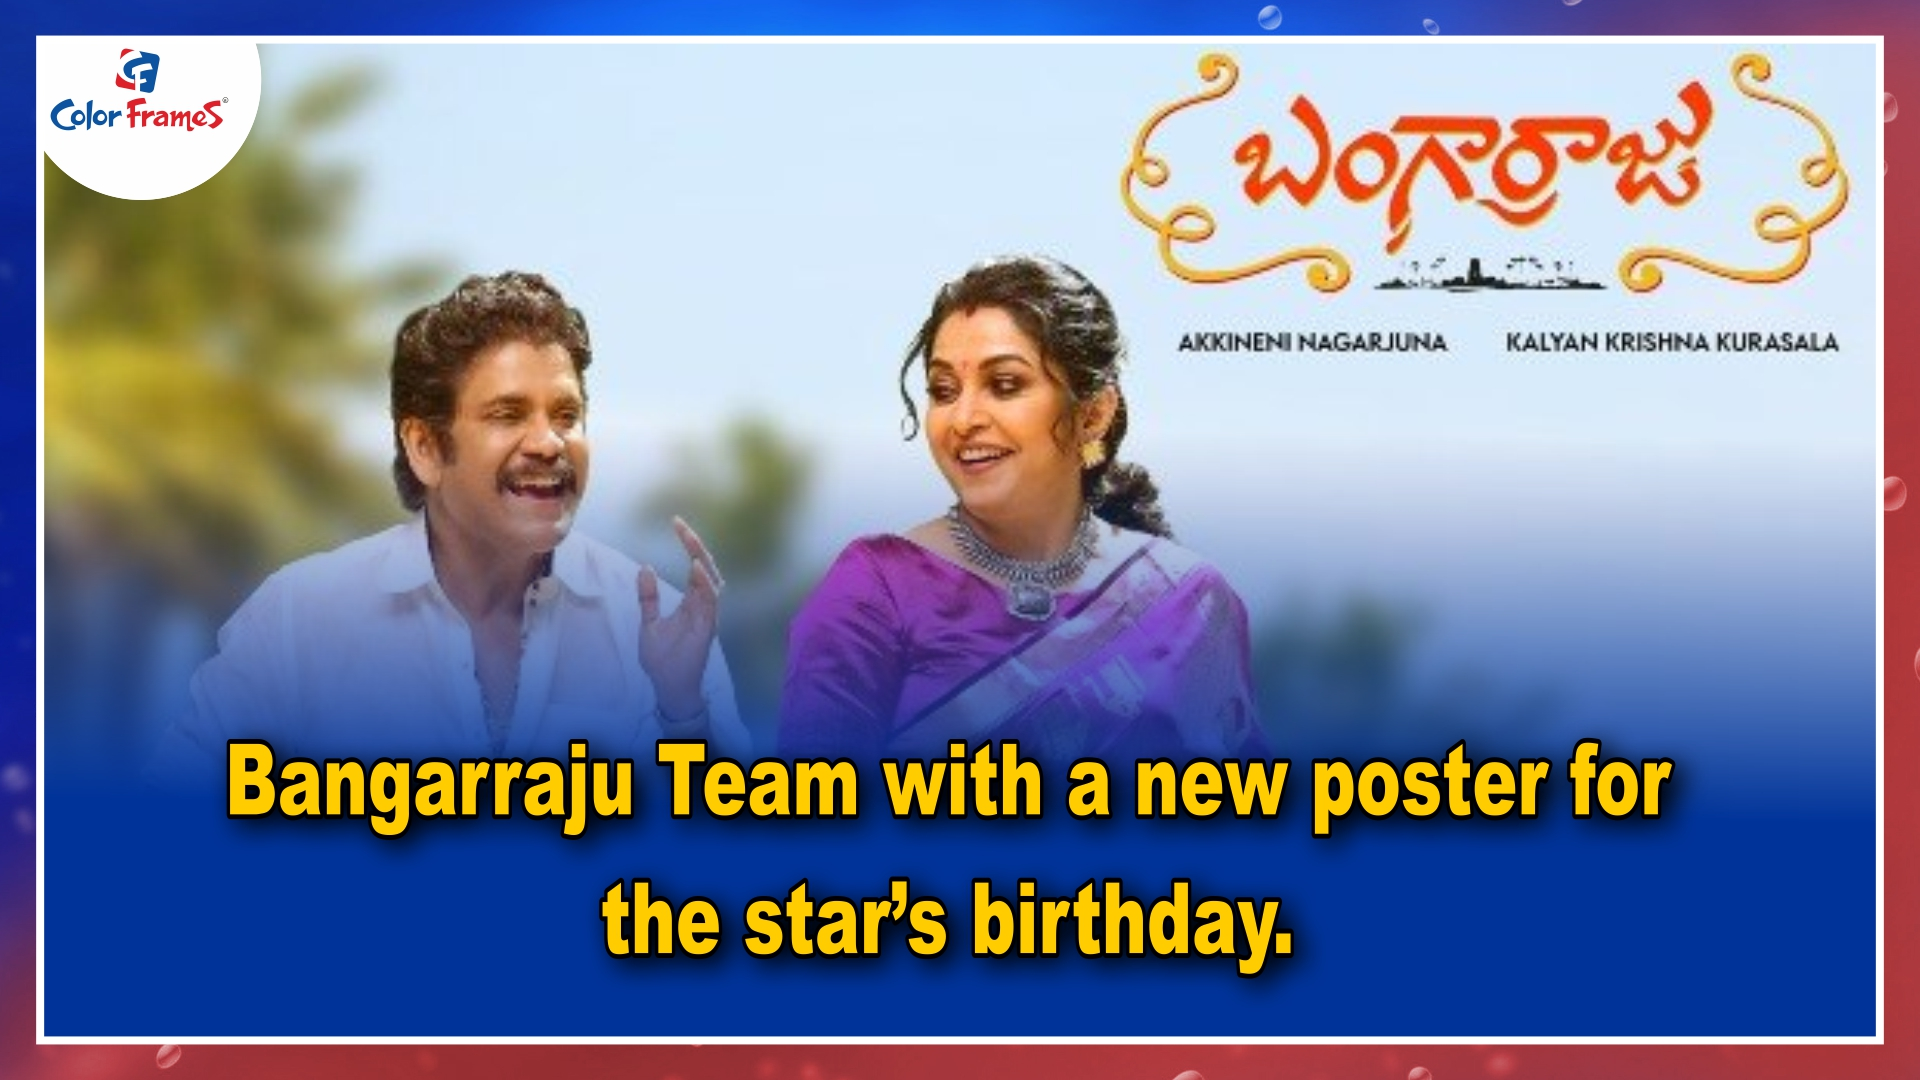 Bangarraju Team with a new poster for the star's birthday.